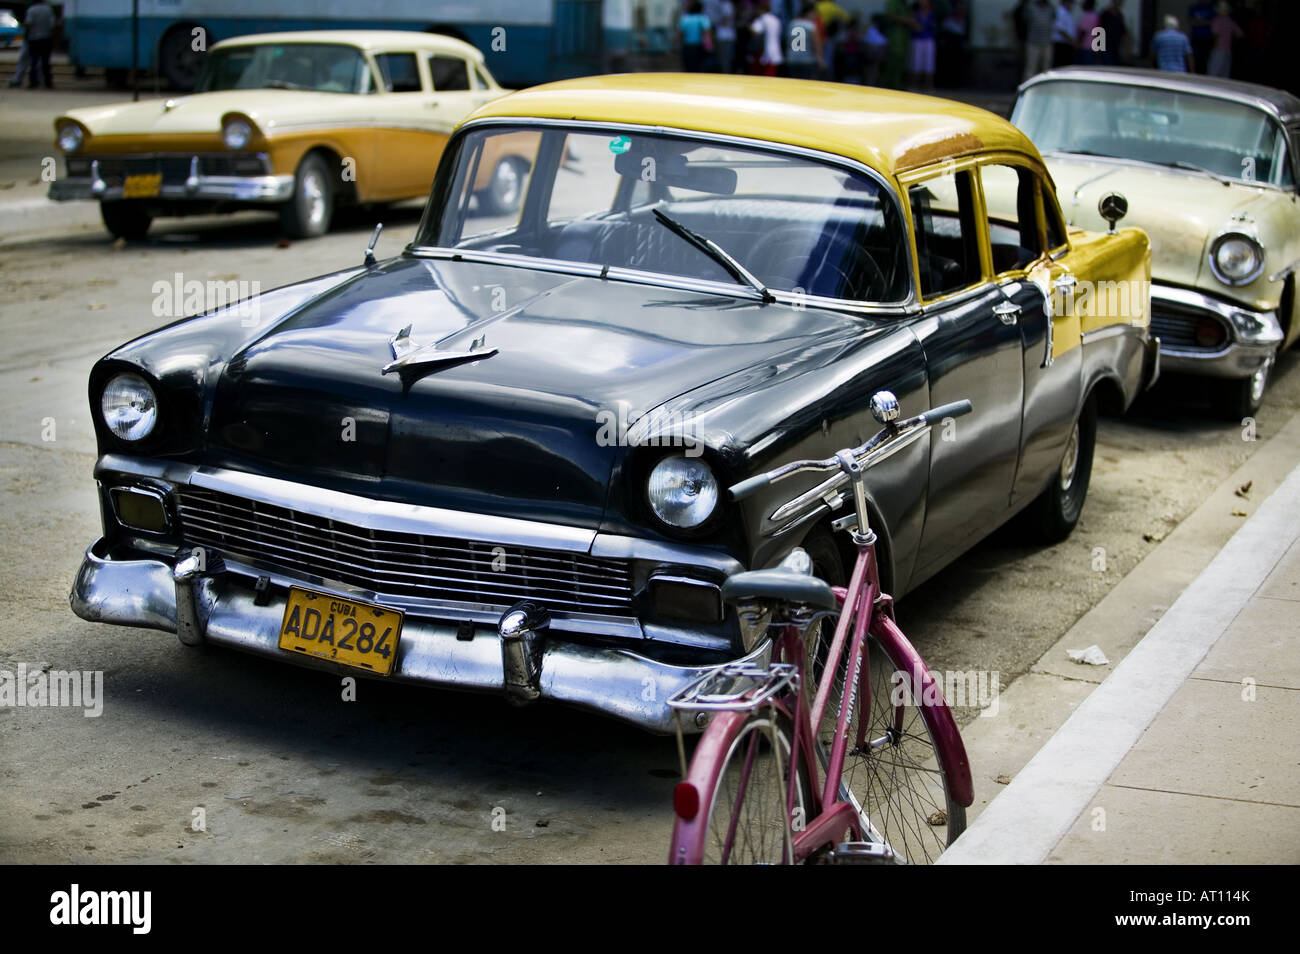 All Chevy chevy classic cars : Old American Chevy (Chevrolet) sits parked in Moran (Cuba ...